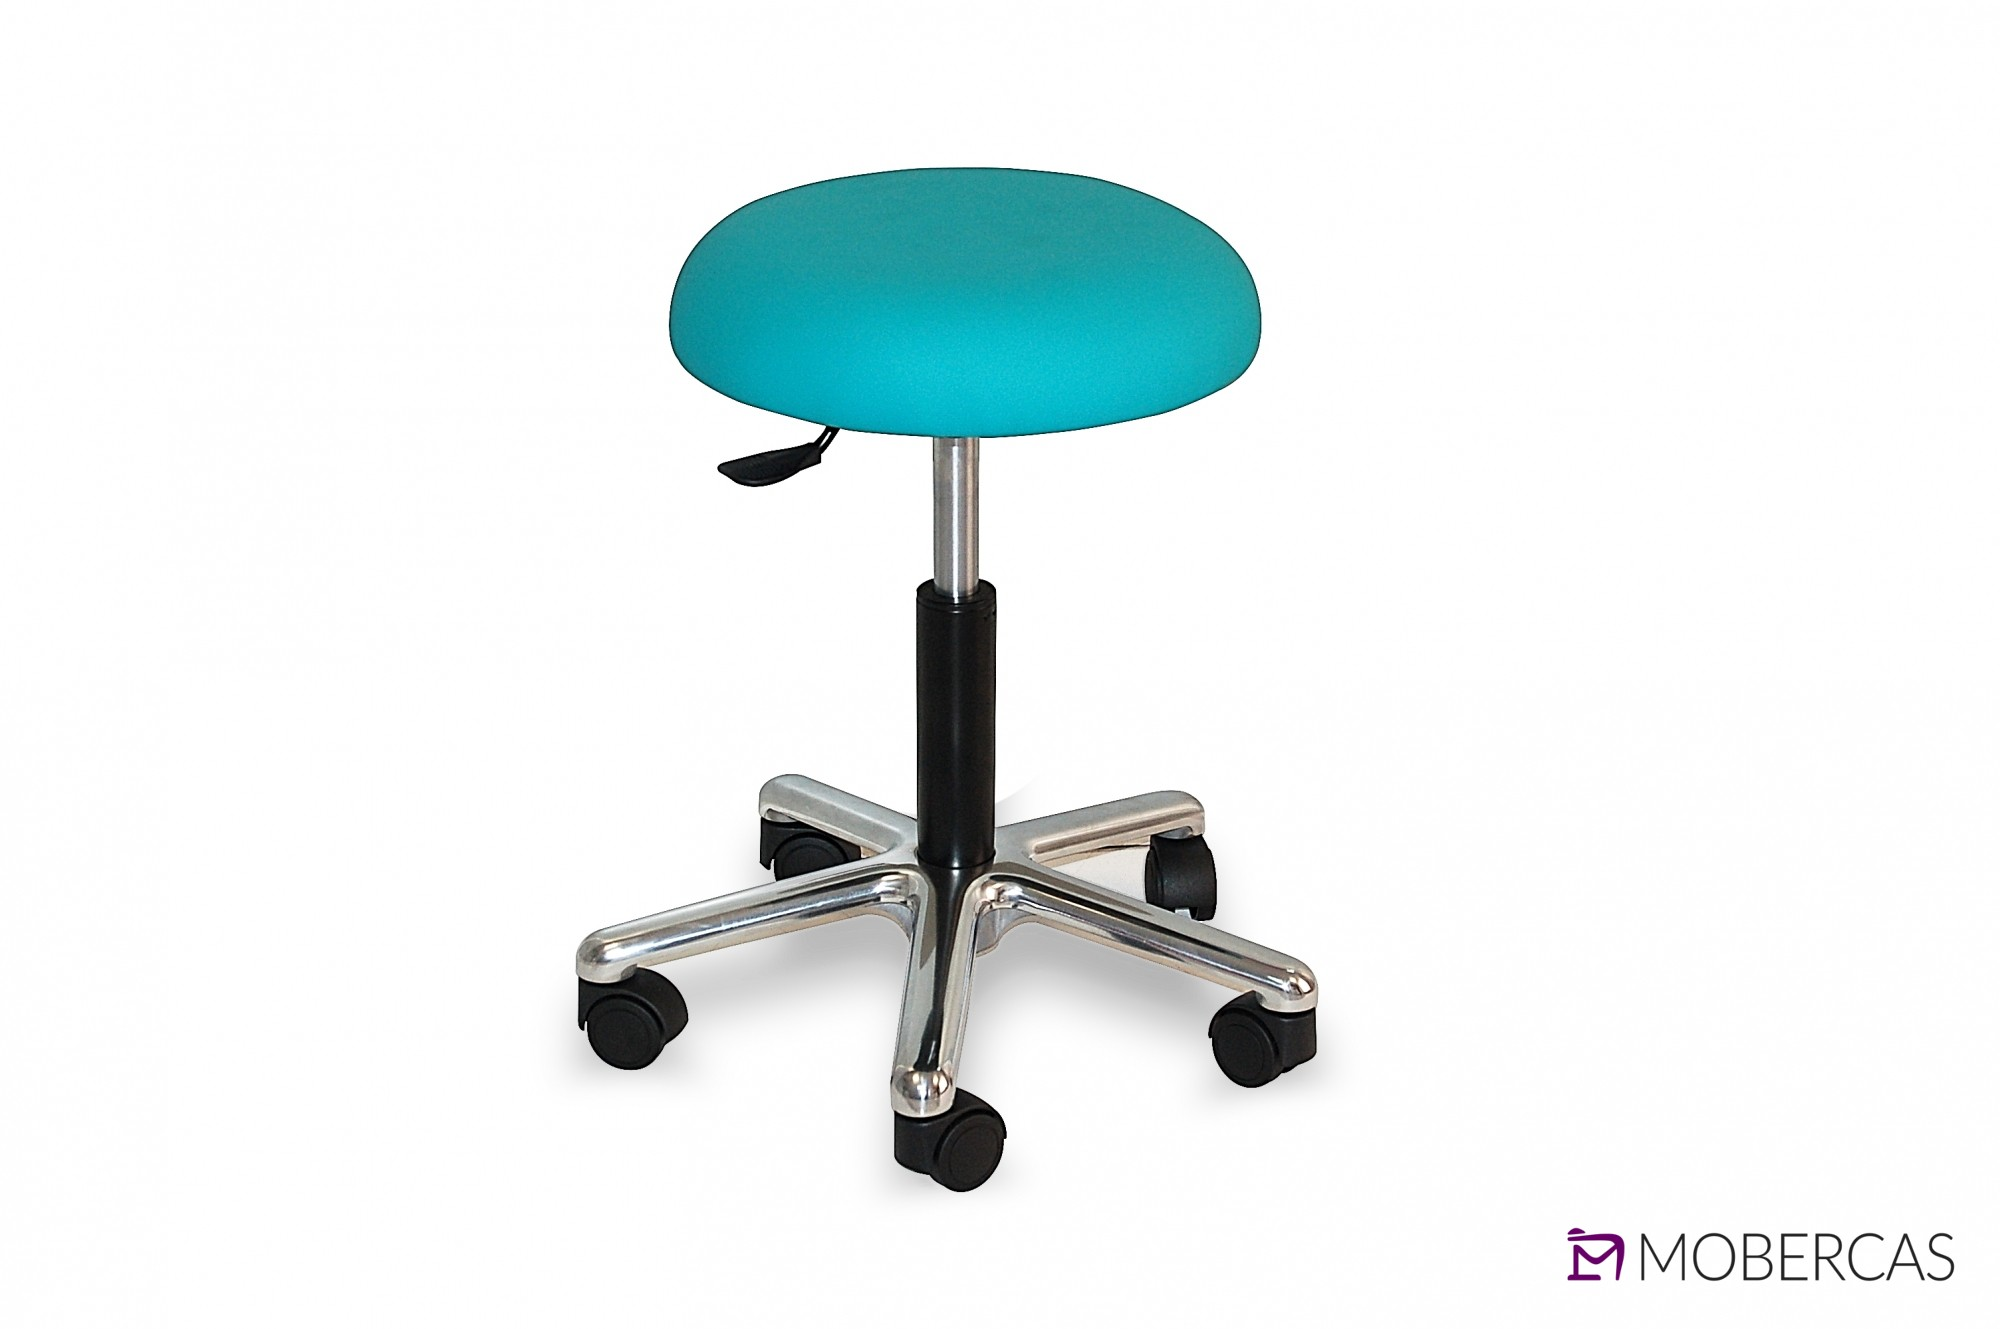 Tabouret Medical Gamme 3 Tabourets Chaises Tablelya